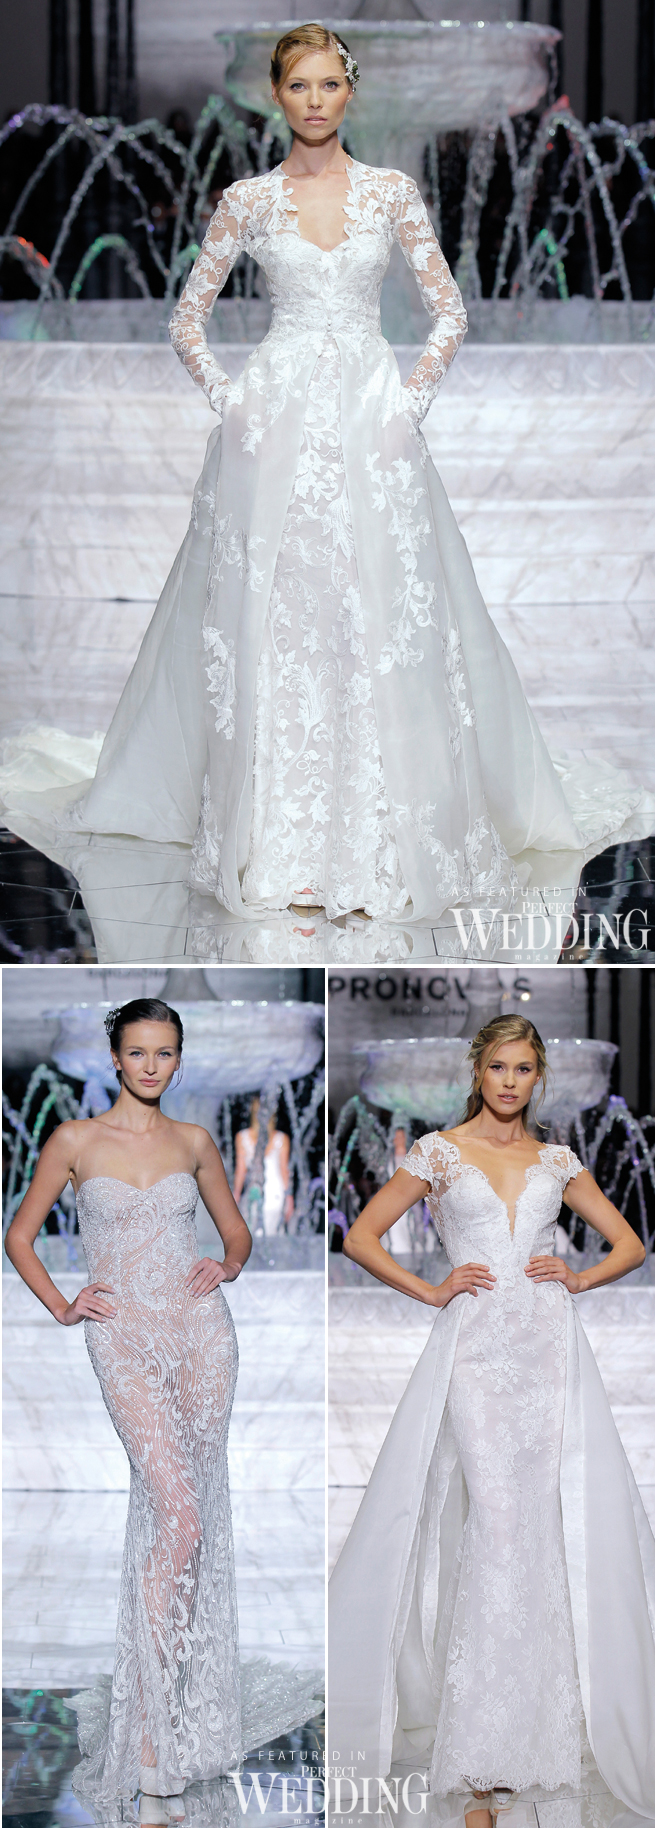 Perfect bride fashion show 87